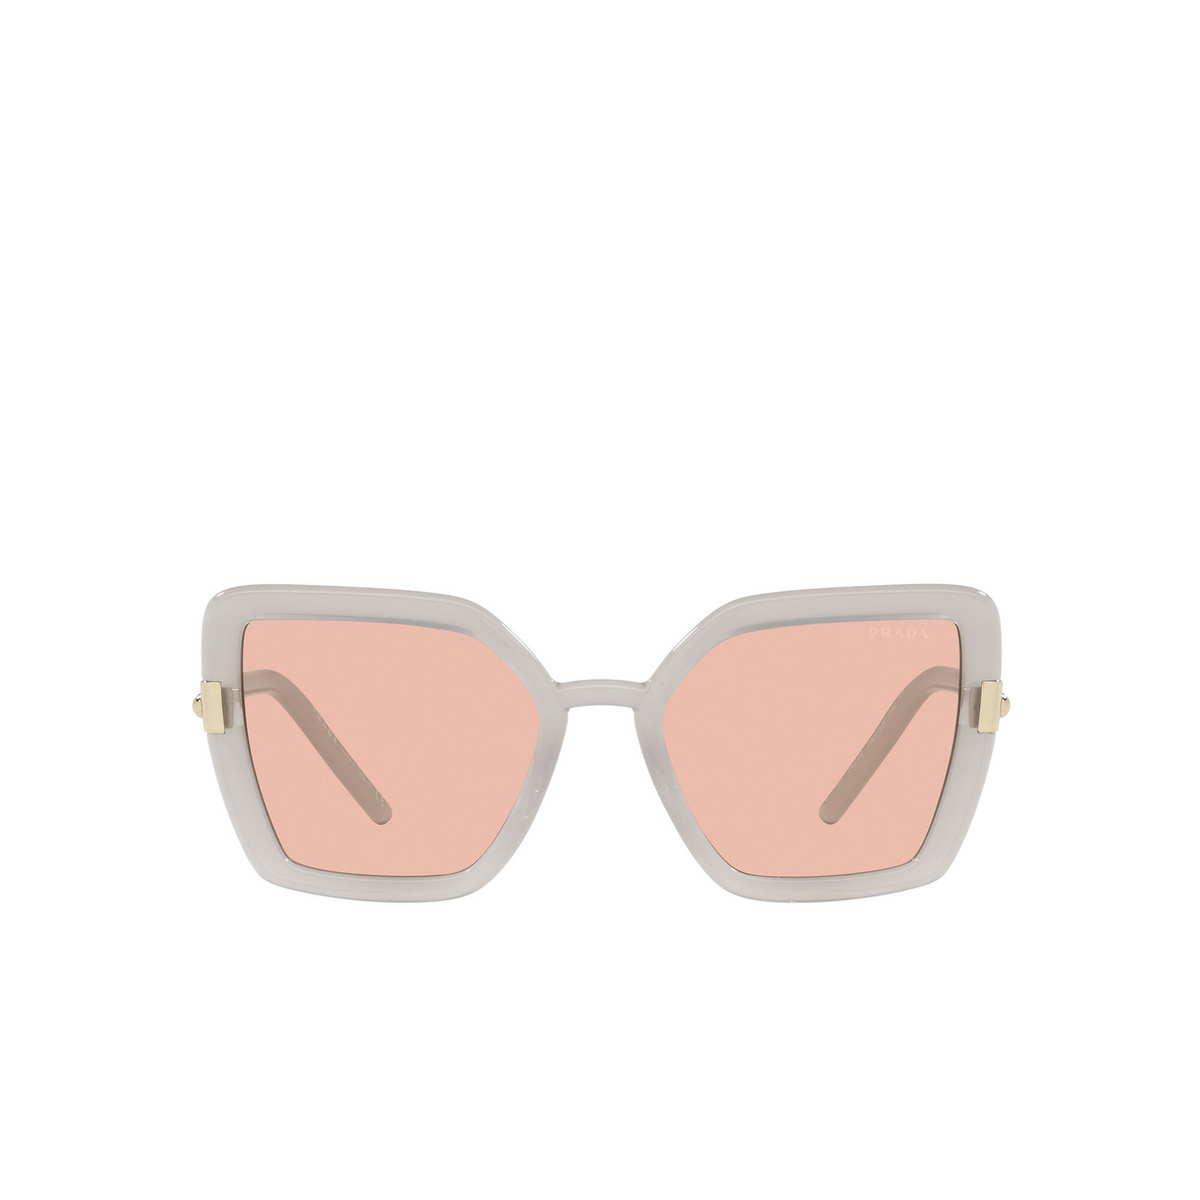 Prada® Butterfly Sunglasses: PR 09WS color Opal Grey TWH03F - front view.